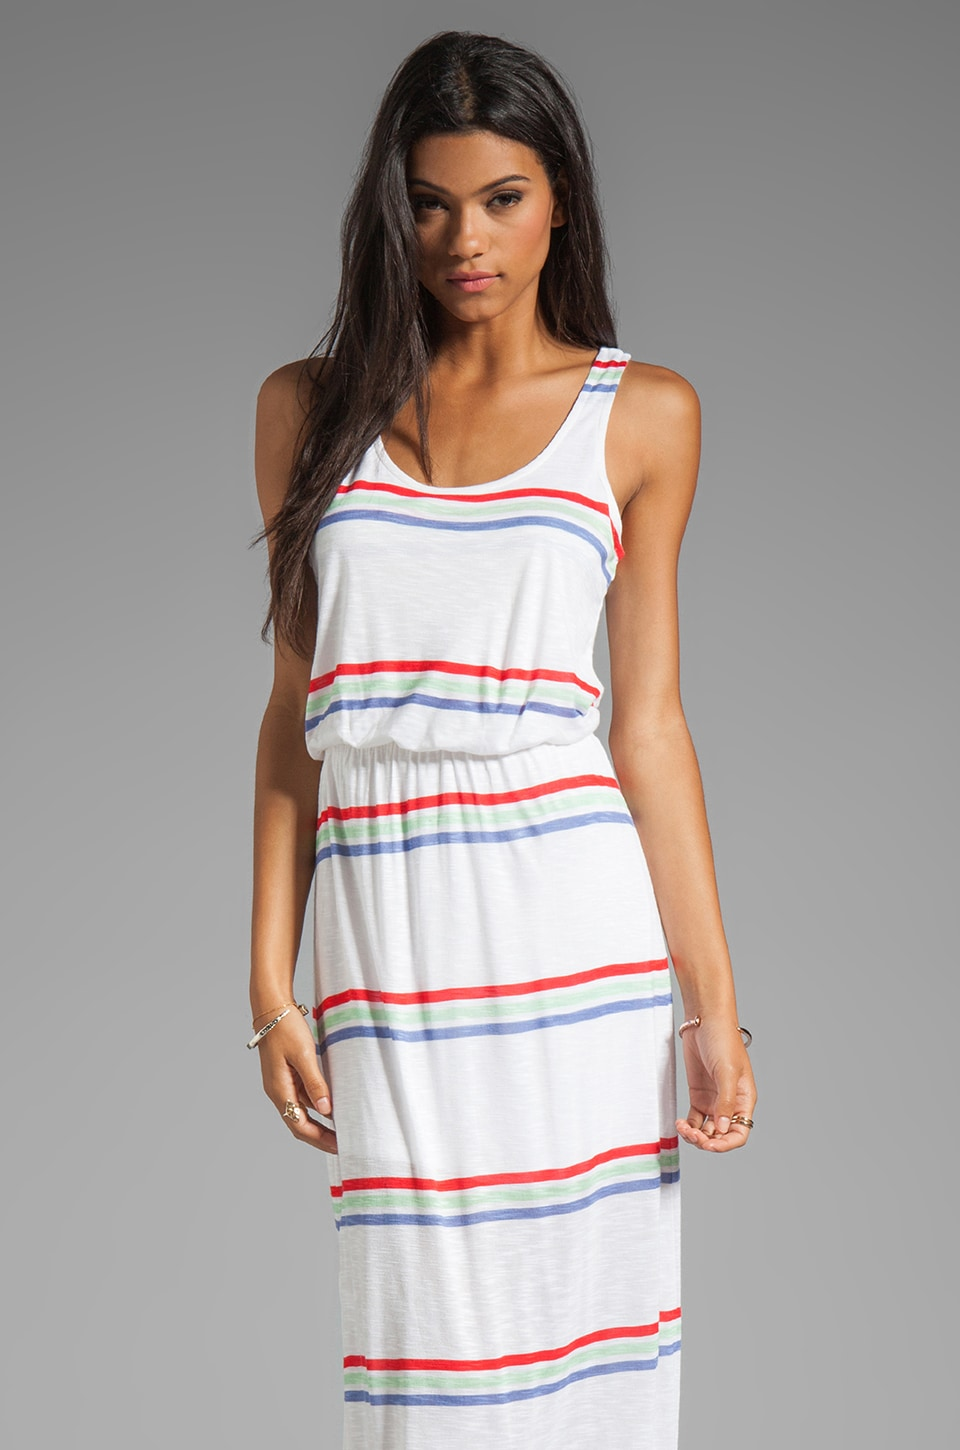 Splendid Hermosa Slub Stripe Dress in Soft White